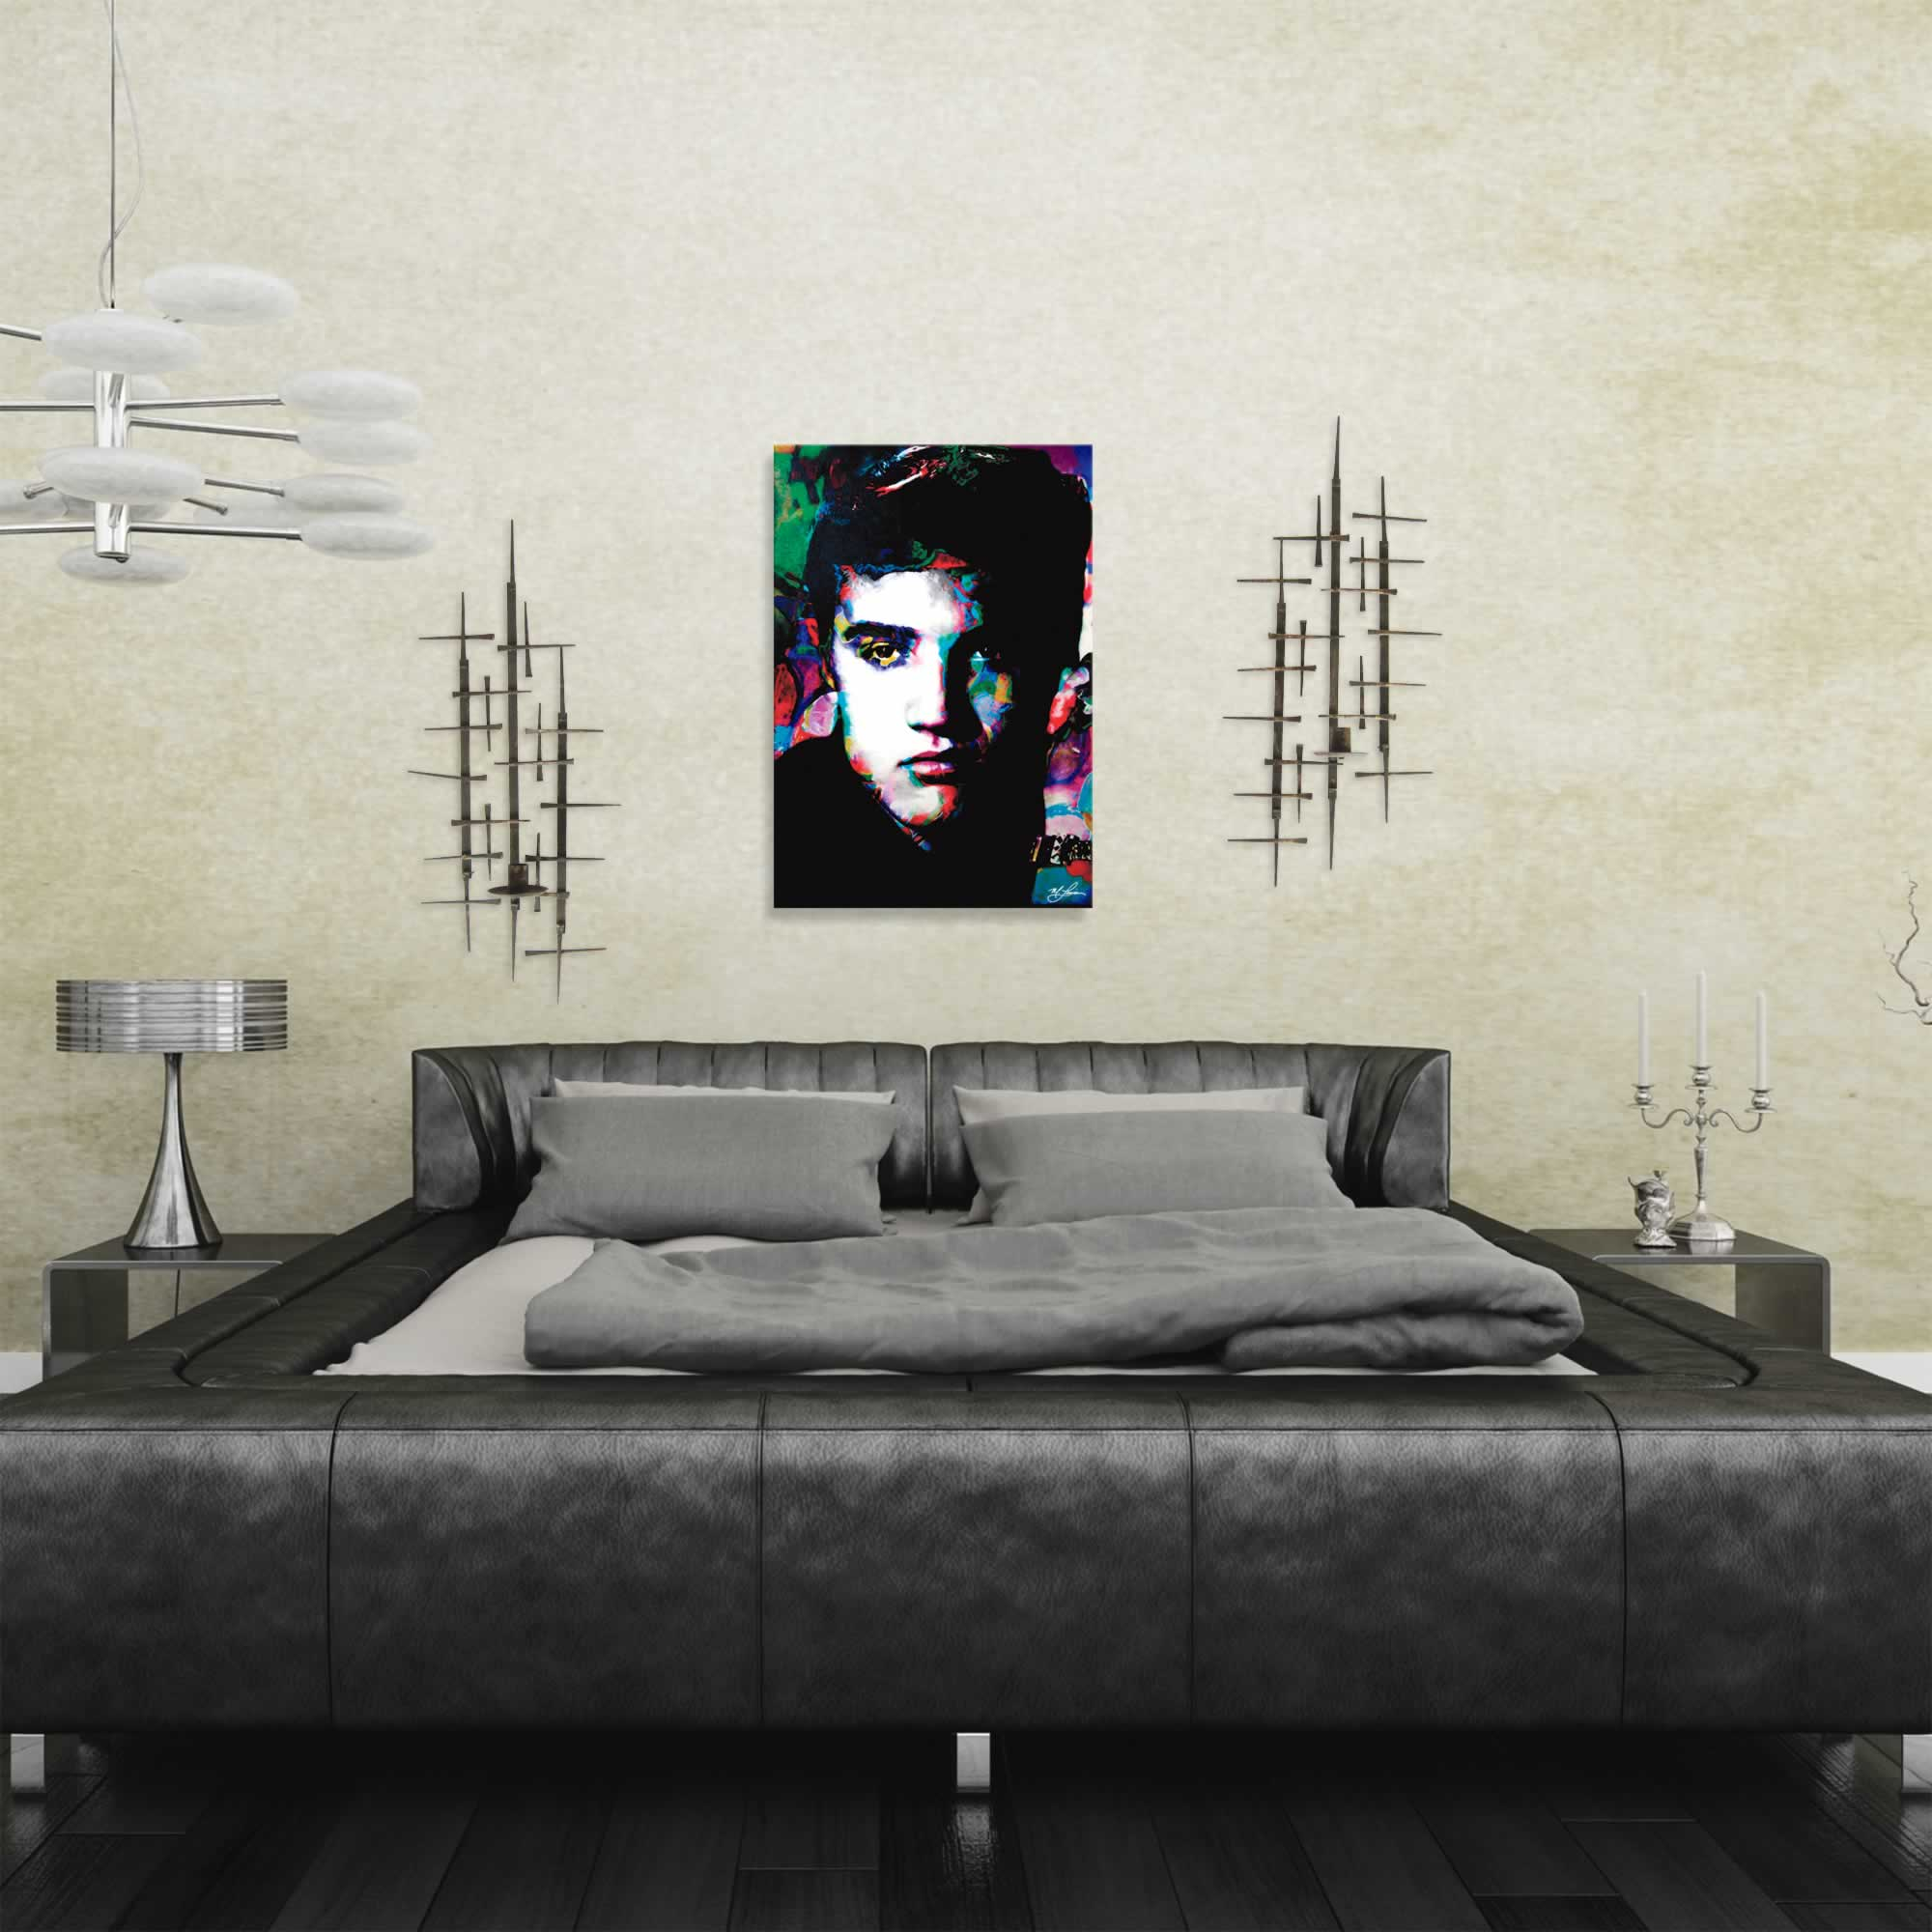 Mark Lewis 'Elvis Presley Electric Ambition' Limited Edition Pop Art Print on Metal or Acrylic - Alternate View 1